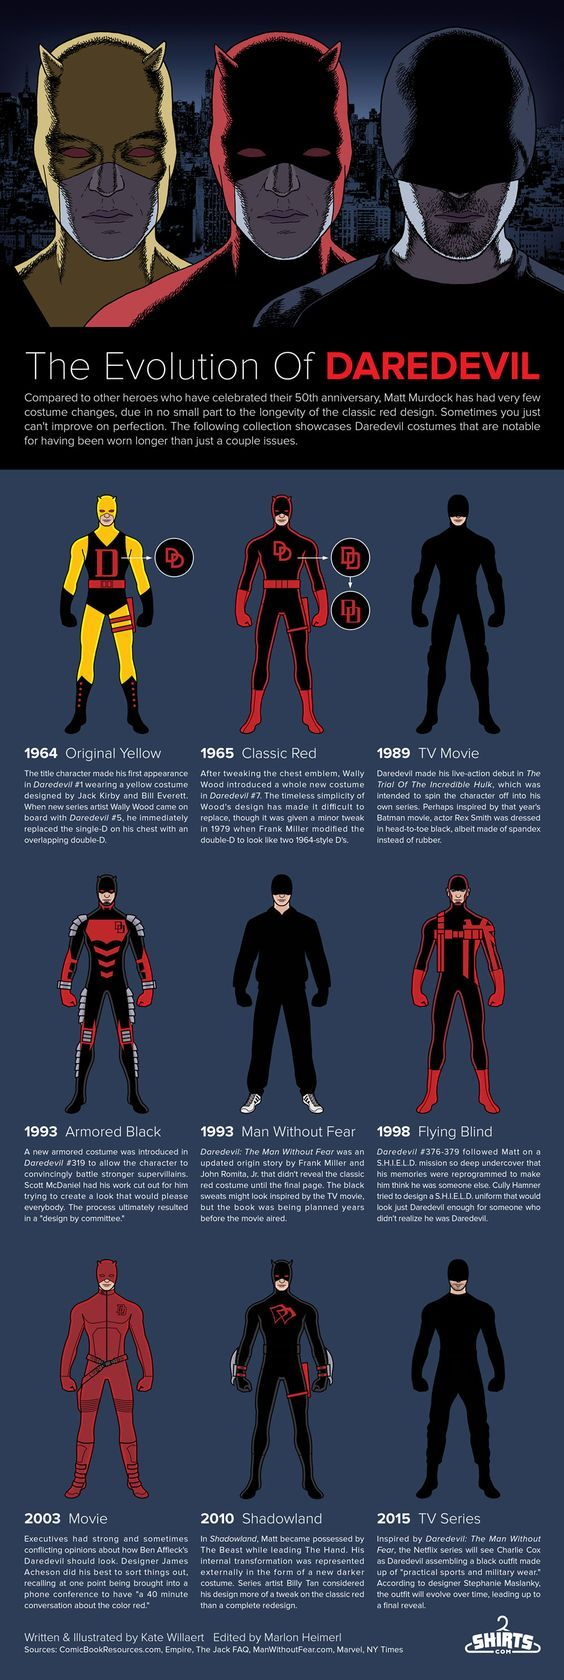 The Evolution of Daredevil Infographic